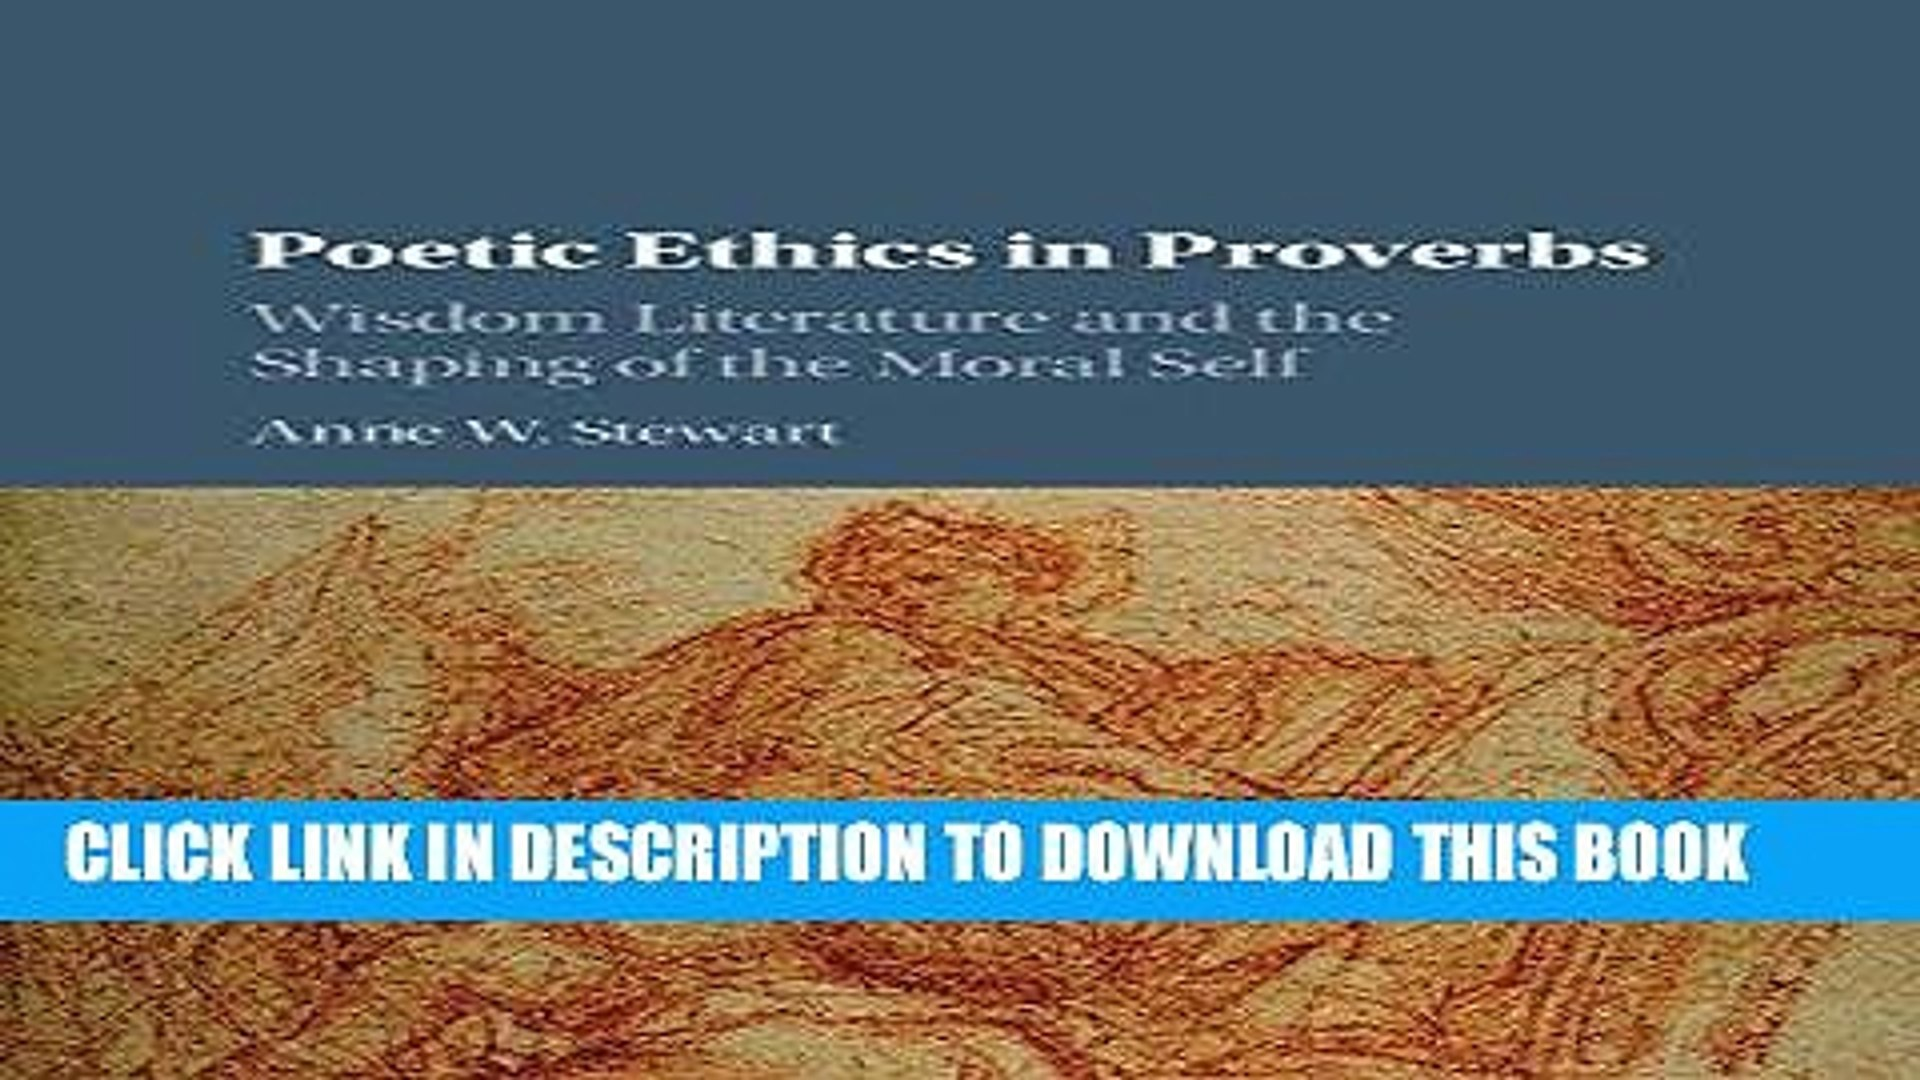 Wisdom Literature and the Shaping of the Moral Self Poetic Ethics in Proverbs